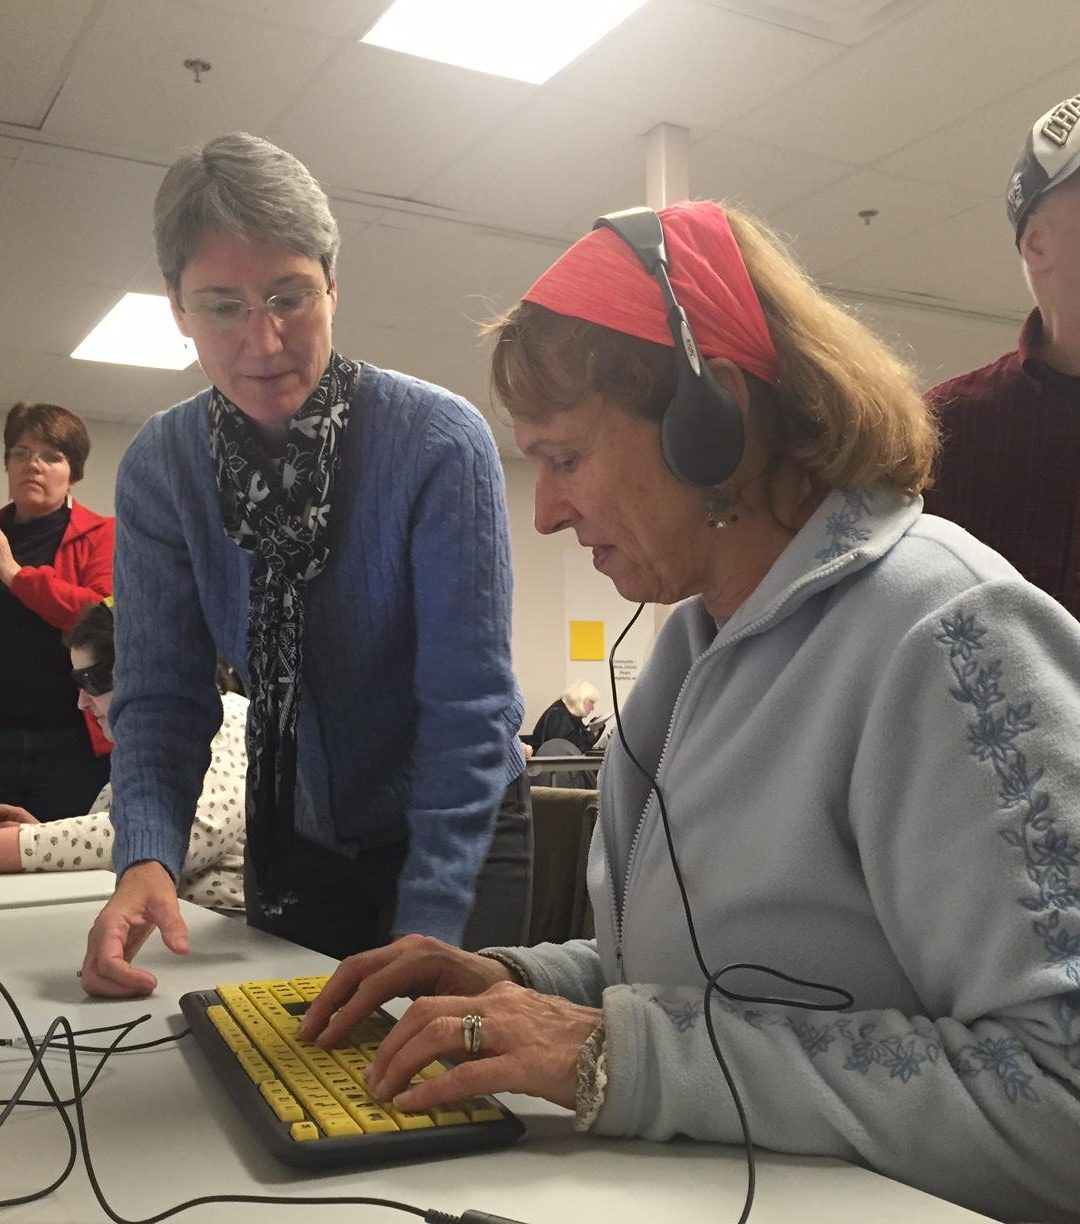 Nancy Druke assisting at the polls